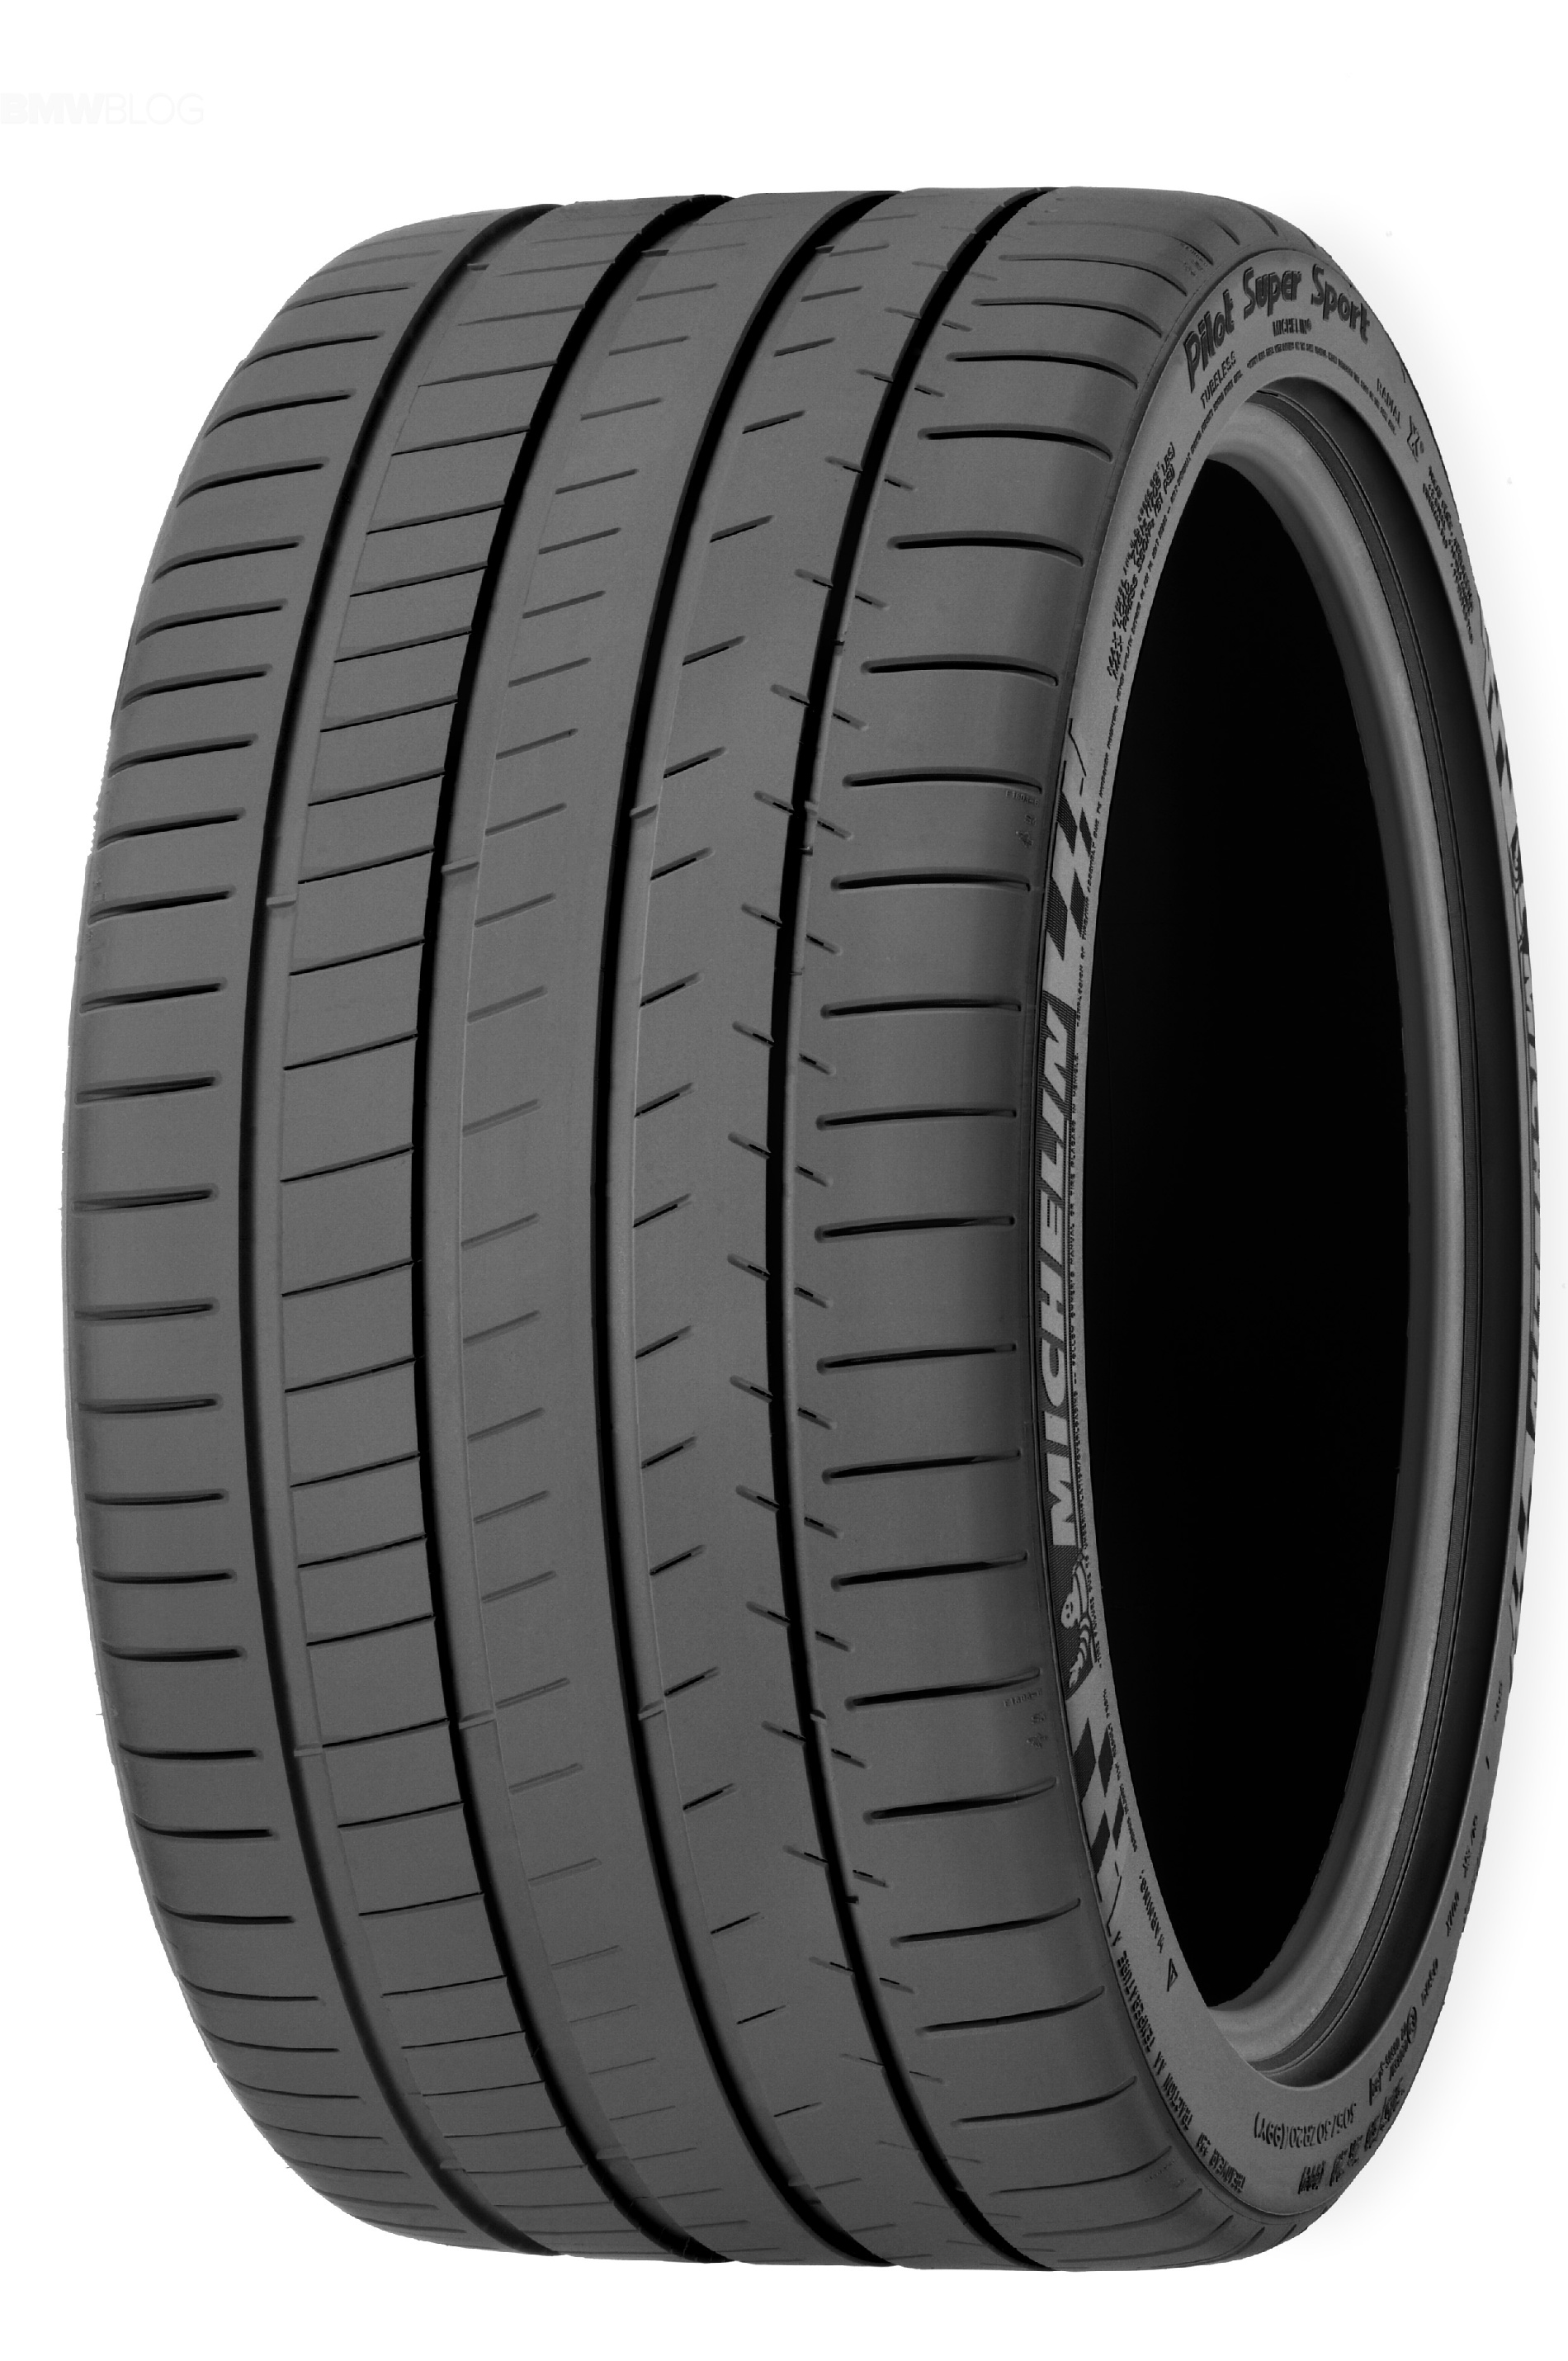 Michelin Pilot Super Sport Designed Specifically For The New Bmw X6m